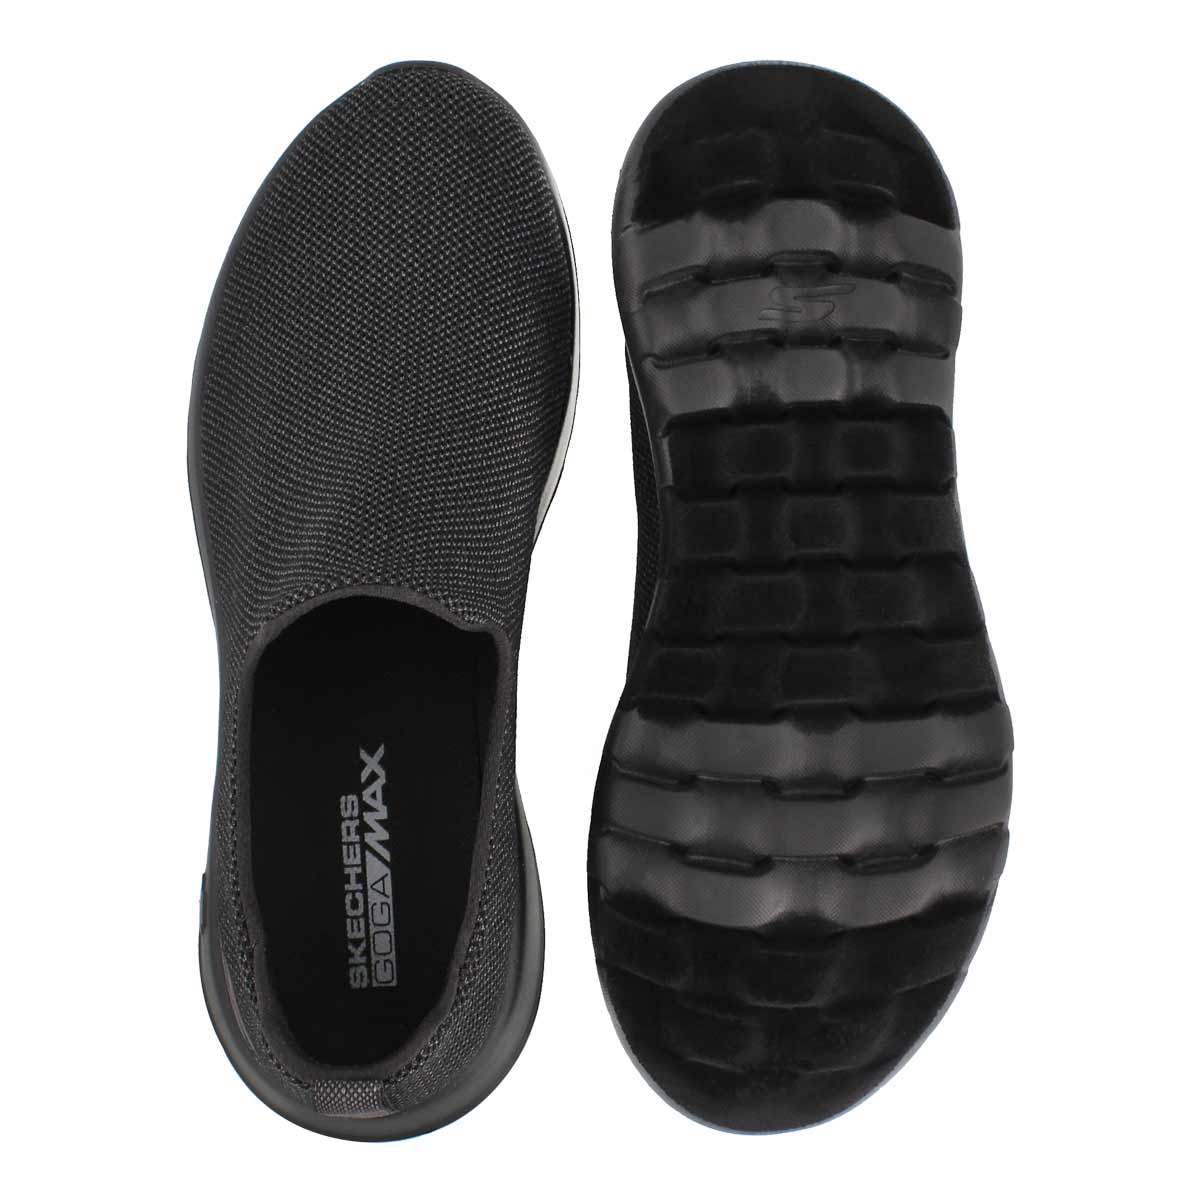 Mns GO Walk Max black slip on shoe